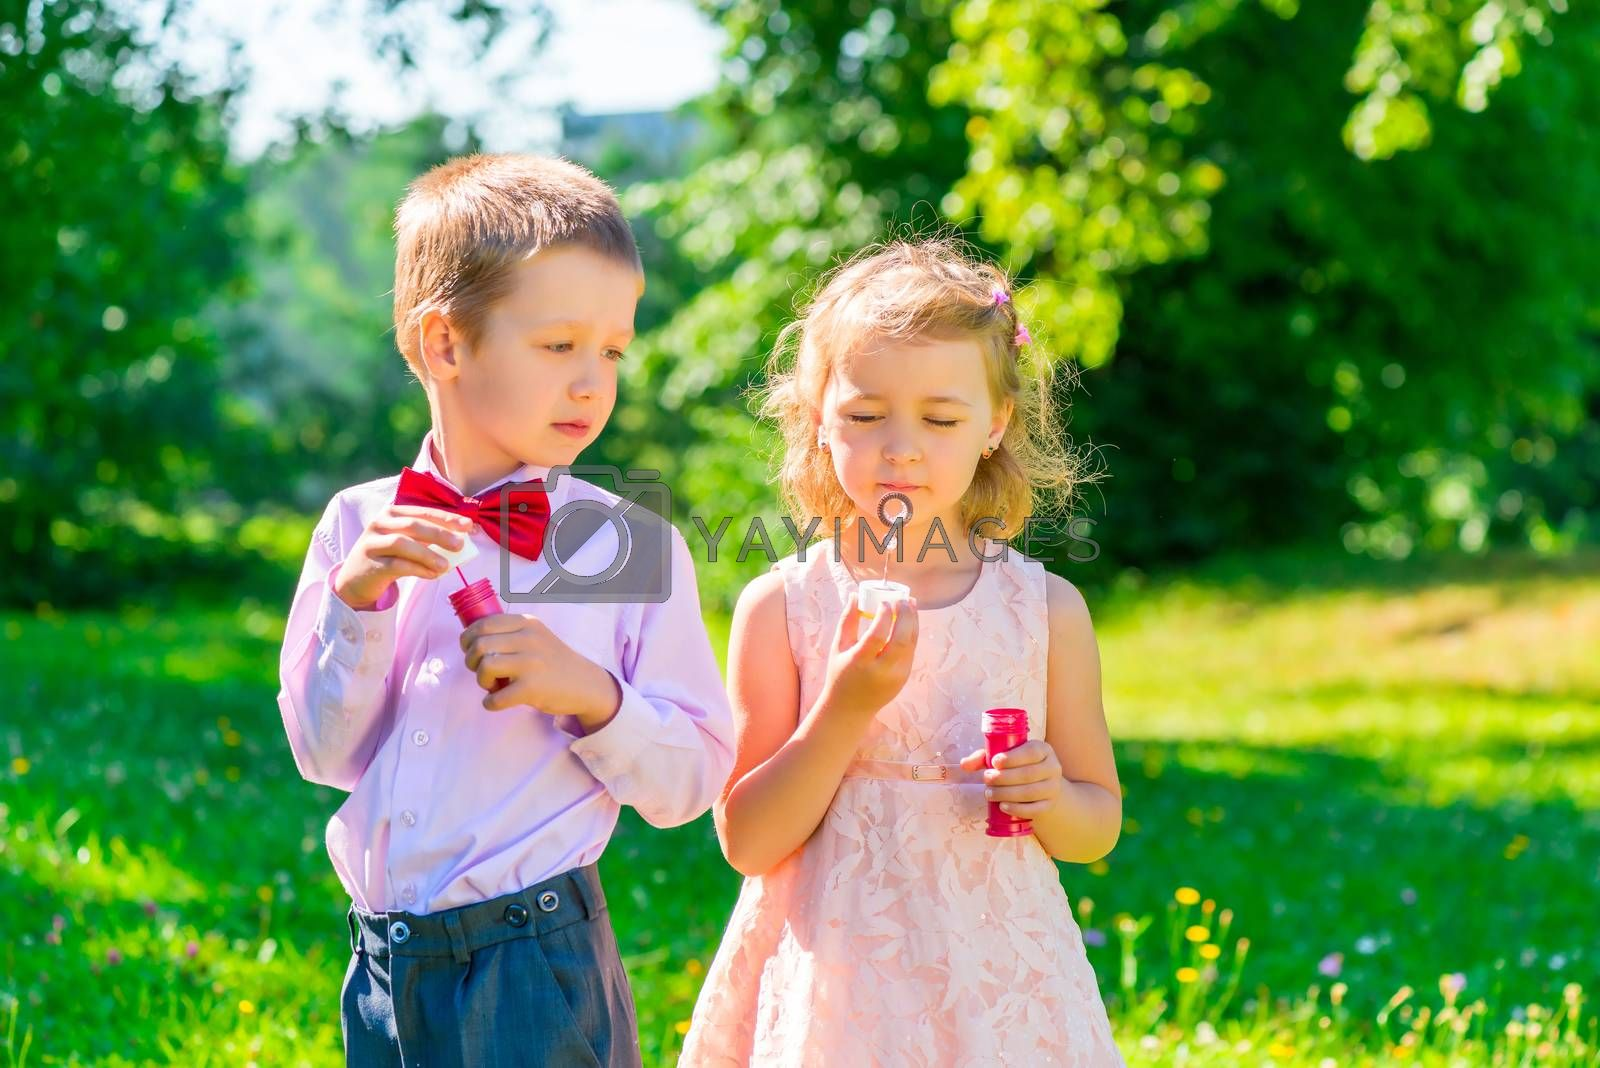 six year old boy looks at the girl makes soap bubbles